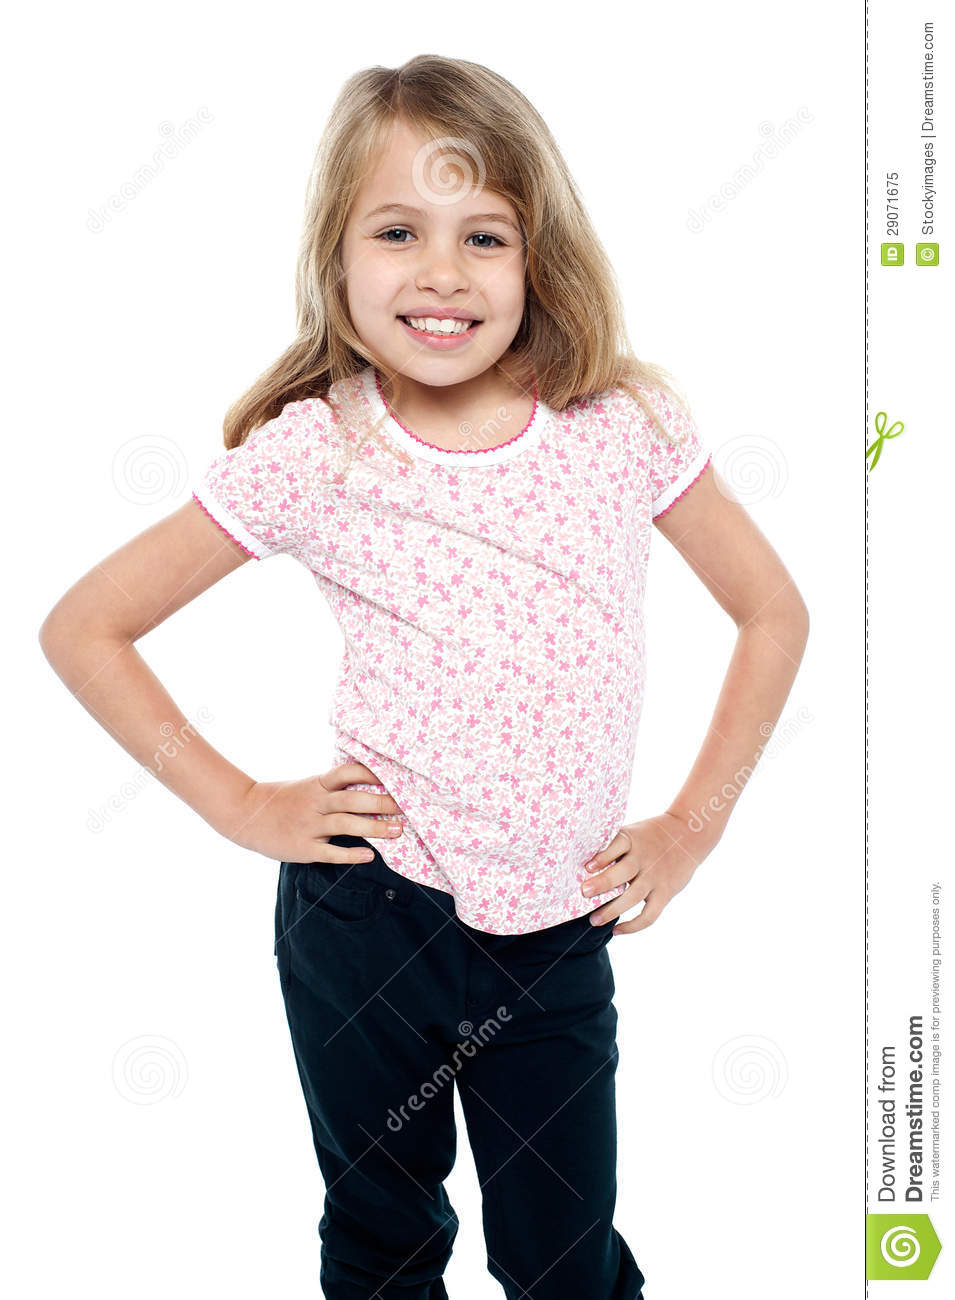 Glamorous Female Posing With Hands On Her Waist Royalty Free Stock Photo